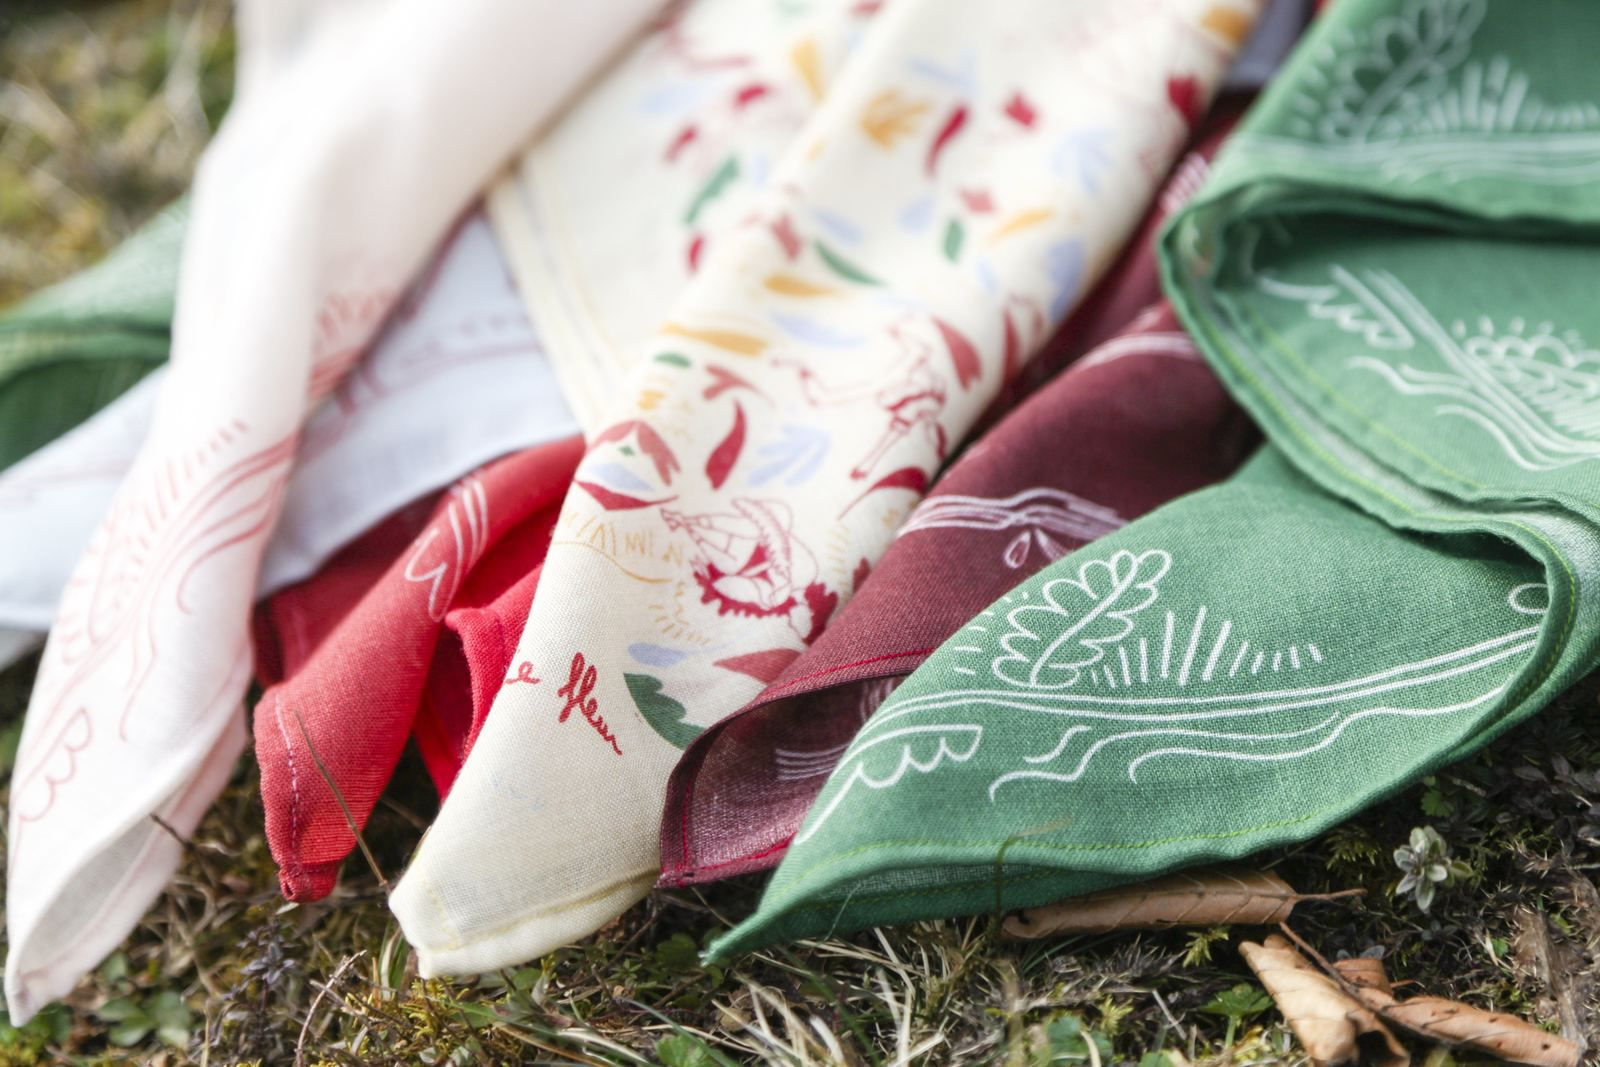 Les foulards de Magali made in Haut-Doubs